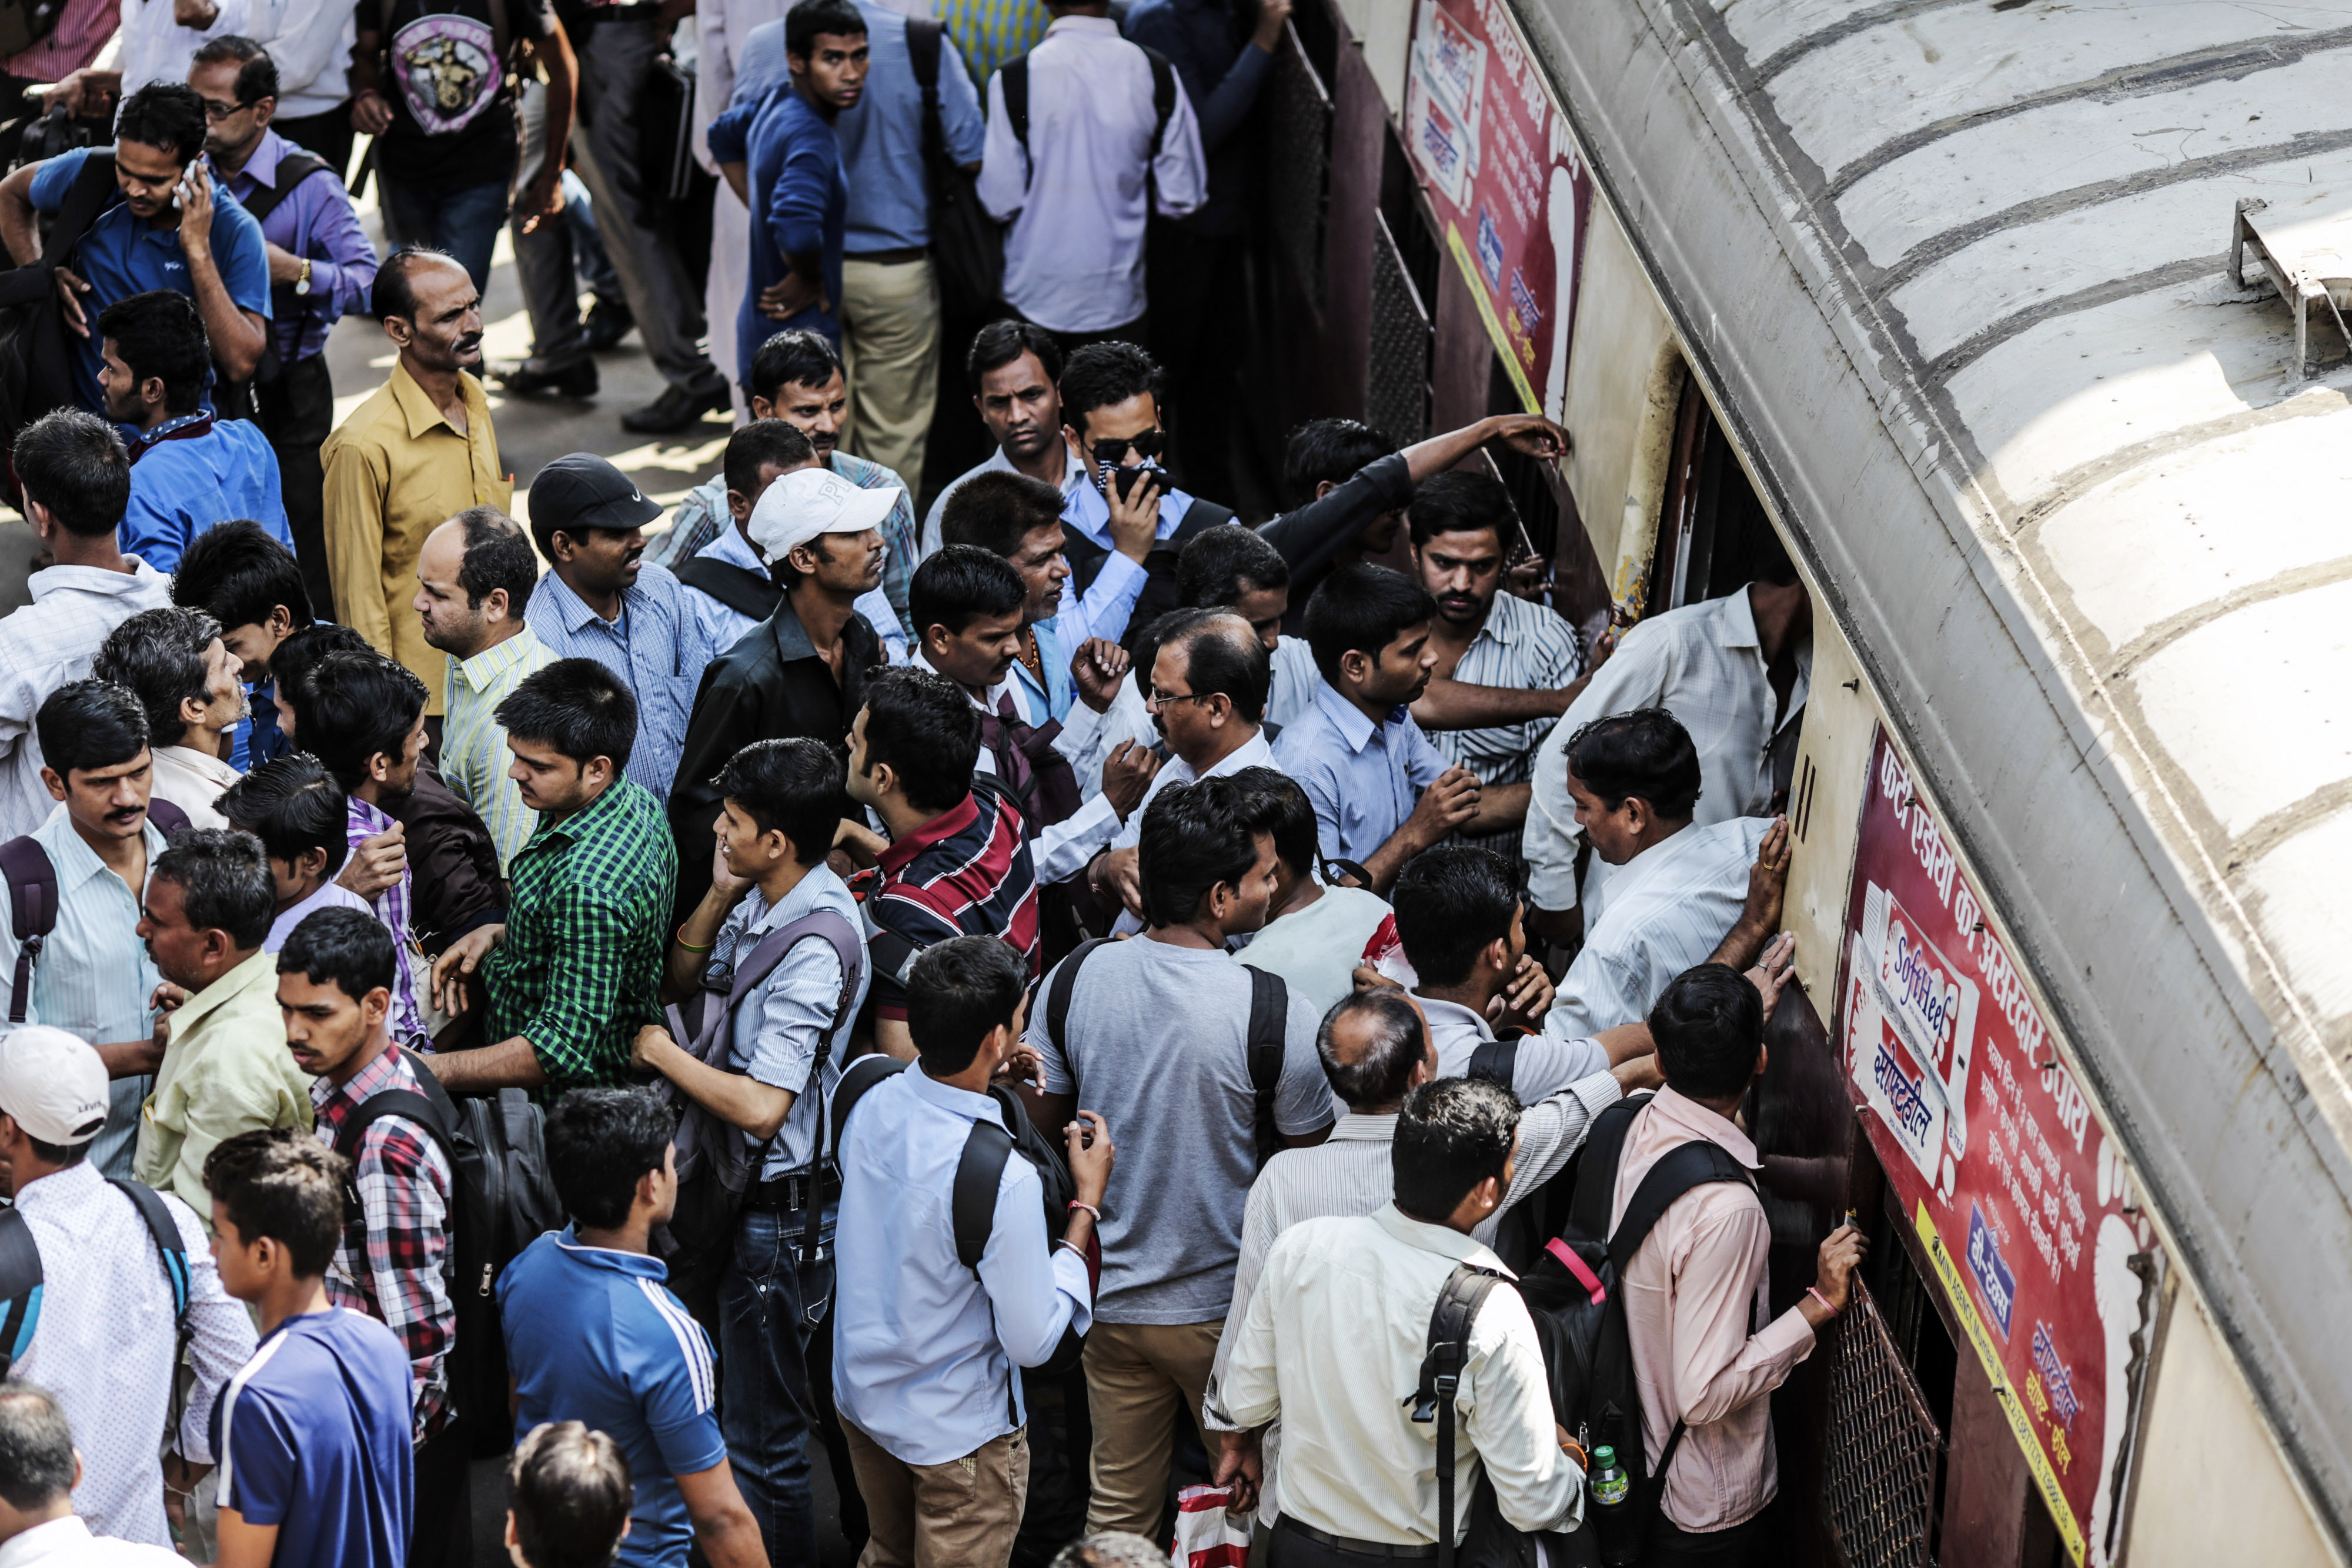 Passengers disembark as commuters wait to board a train during the morning rush hour at Kurla railway station in Mumbai, India, on Wednesday, April 15, 2015.